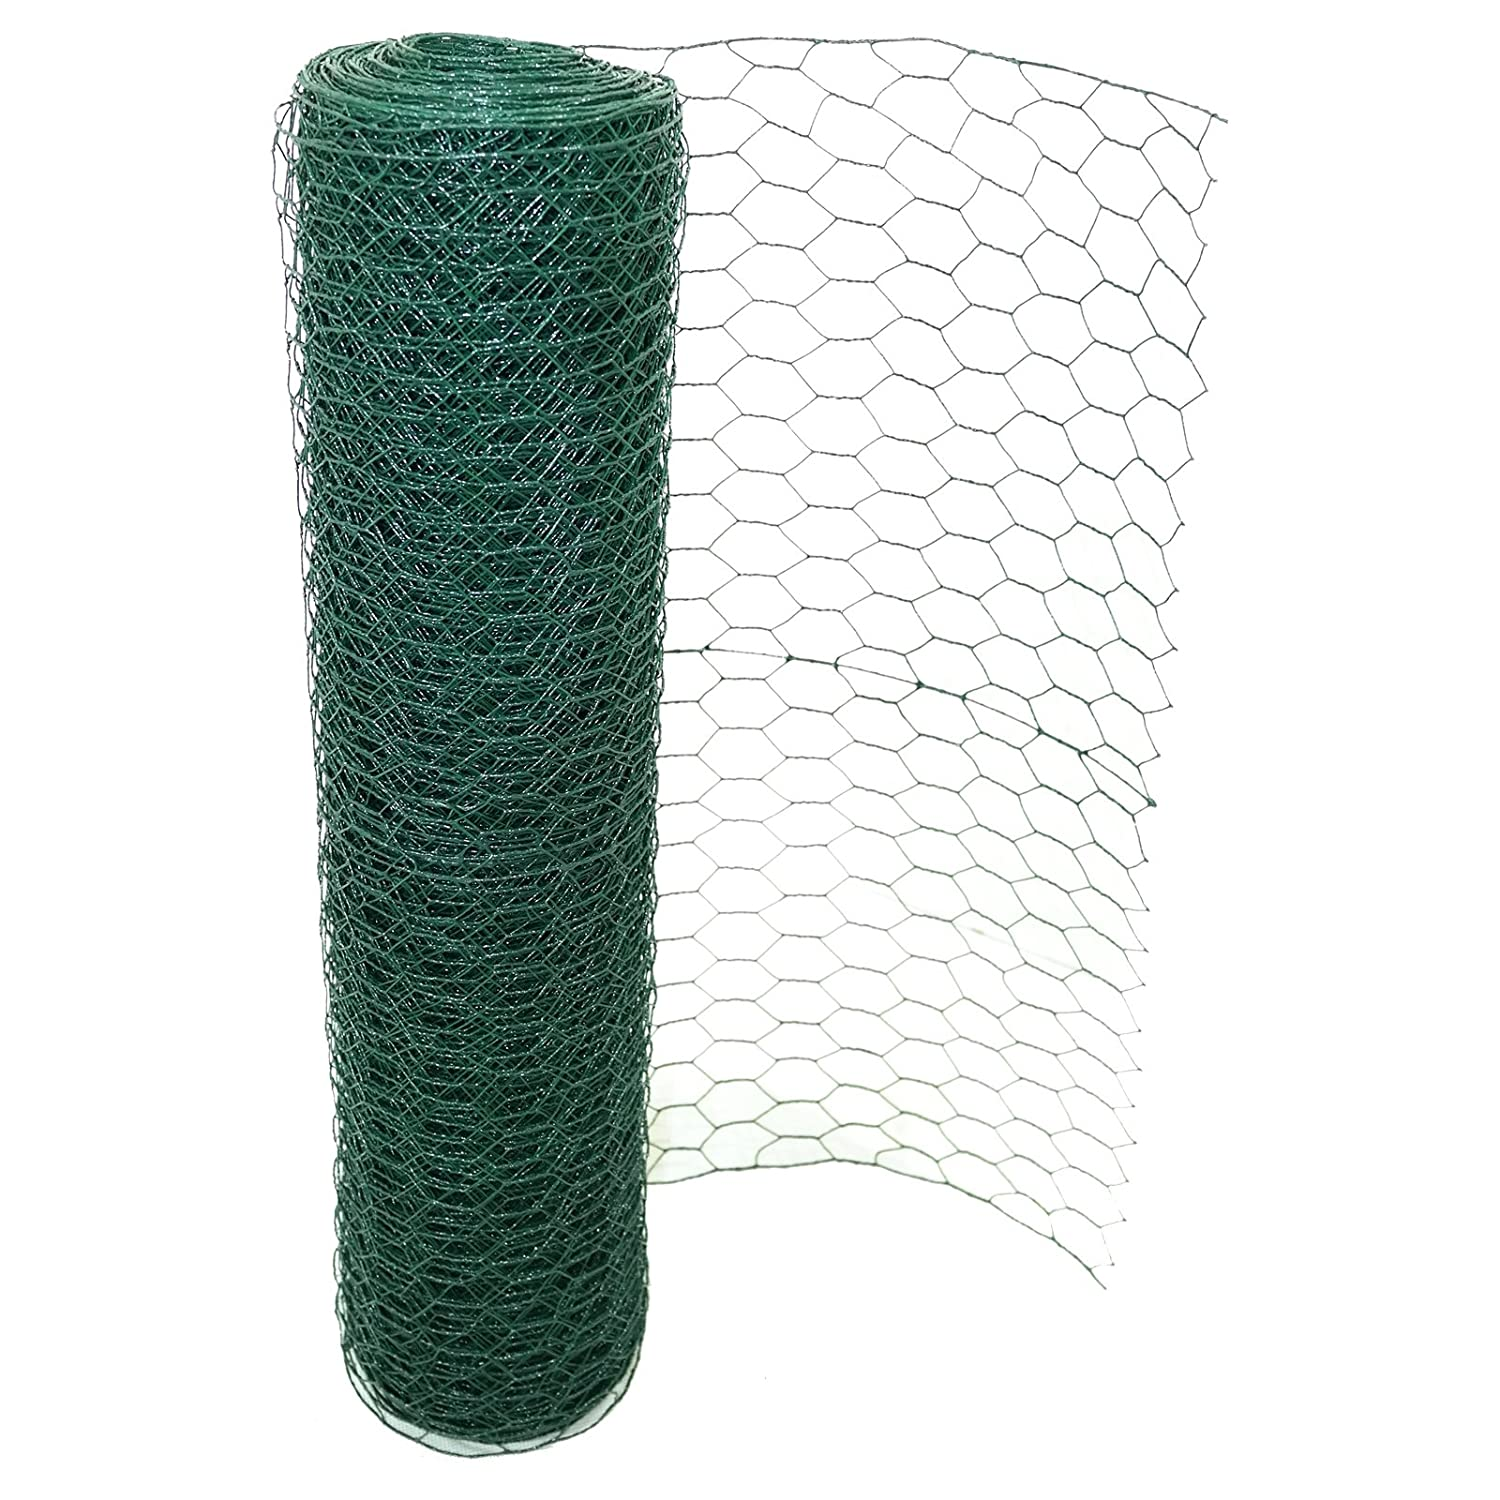 Marko Fencing 50mm PVC Coated Chicken Wire Rabbit Mesh Green Fencing Aviary Fence 25M 50M 0.9M x 25M